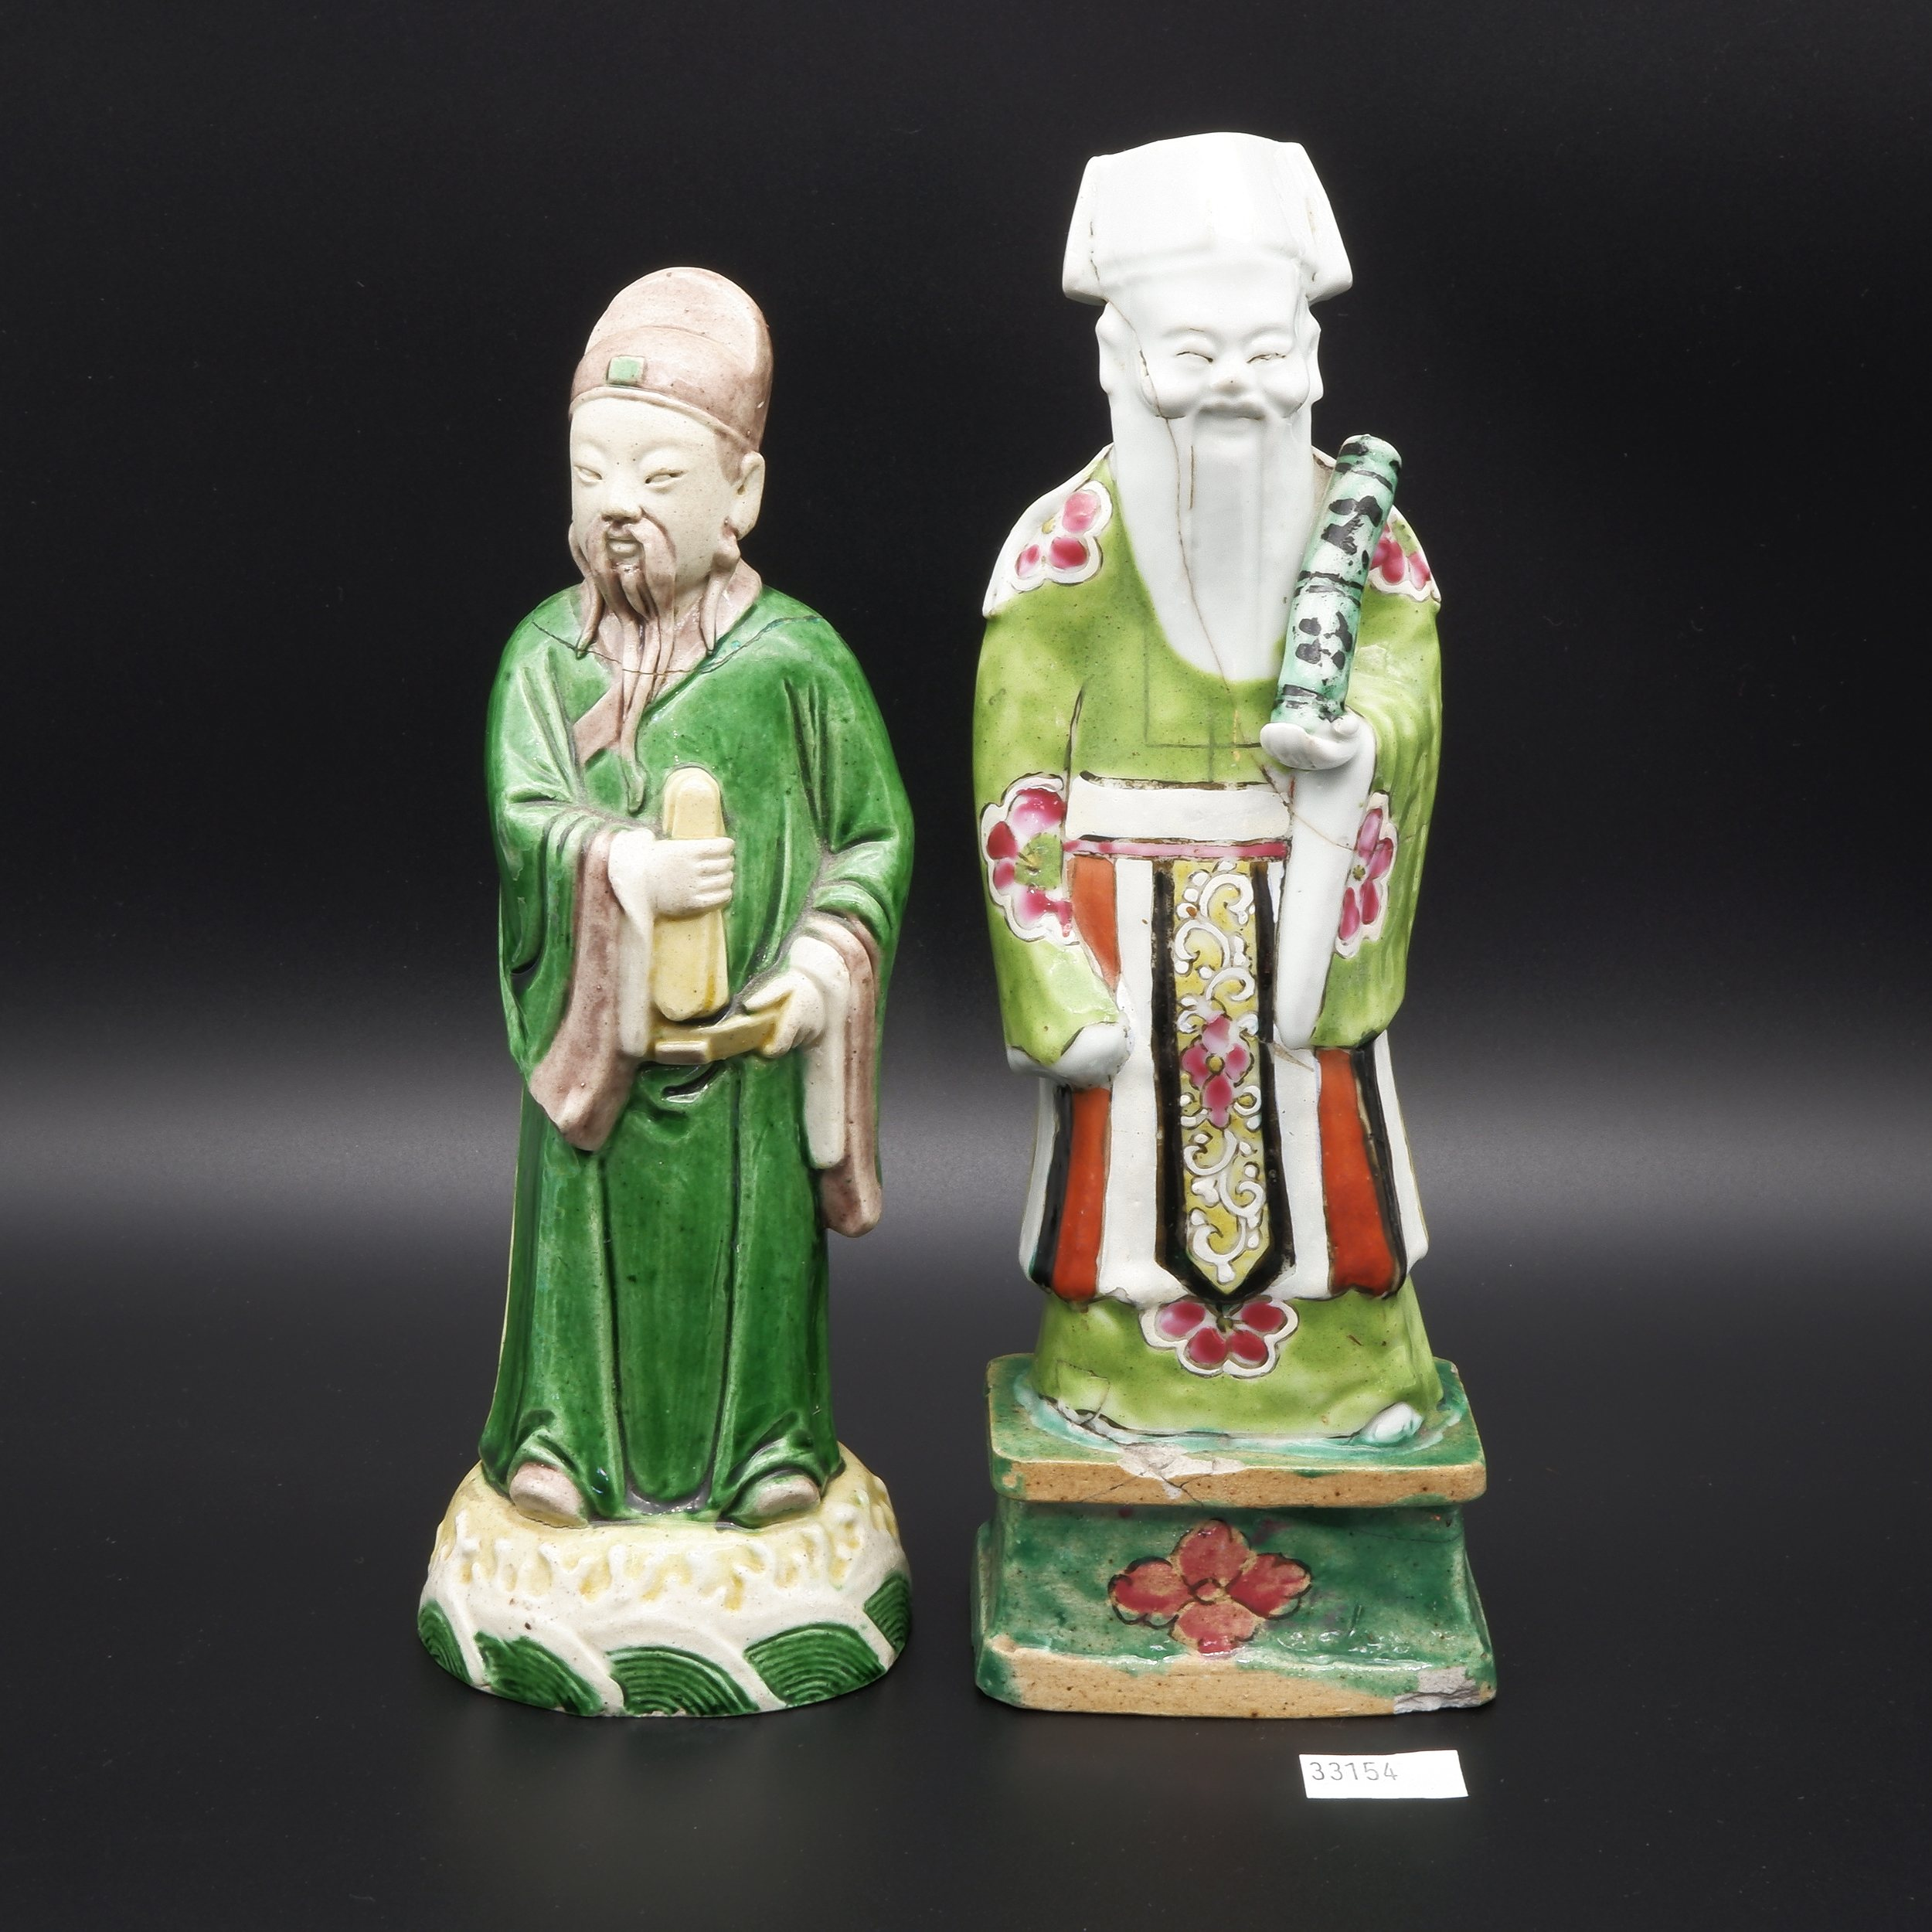 'Two 18th Chinese Famille Verte Glazed Biscuit Porcelain Models of Daoist Immortals'